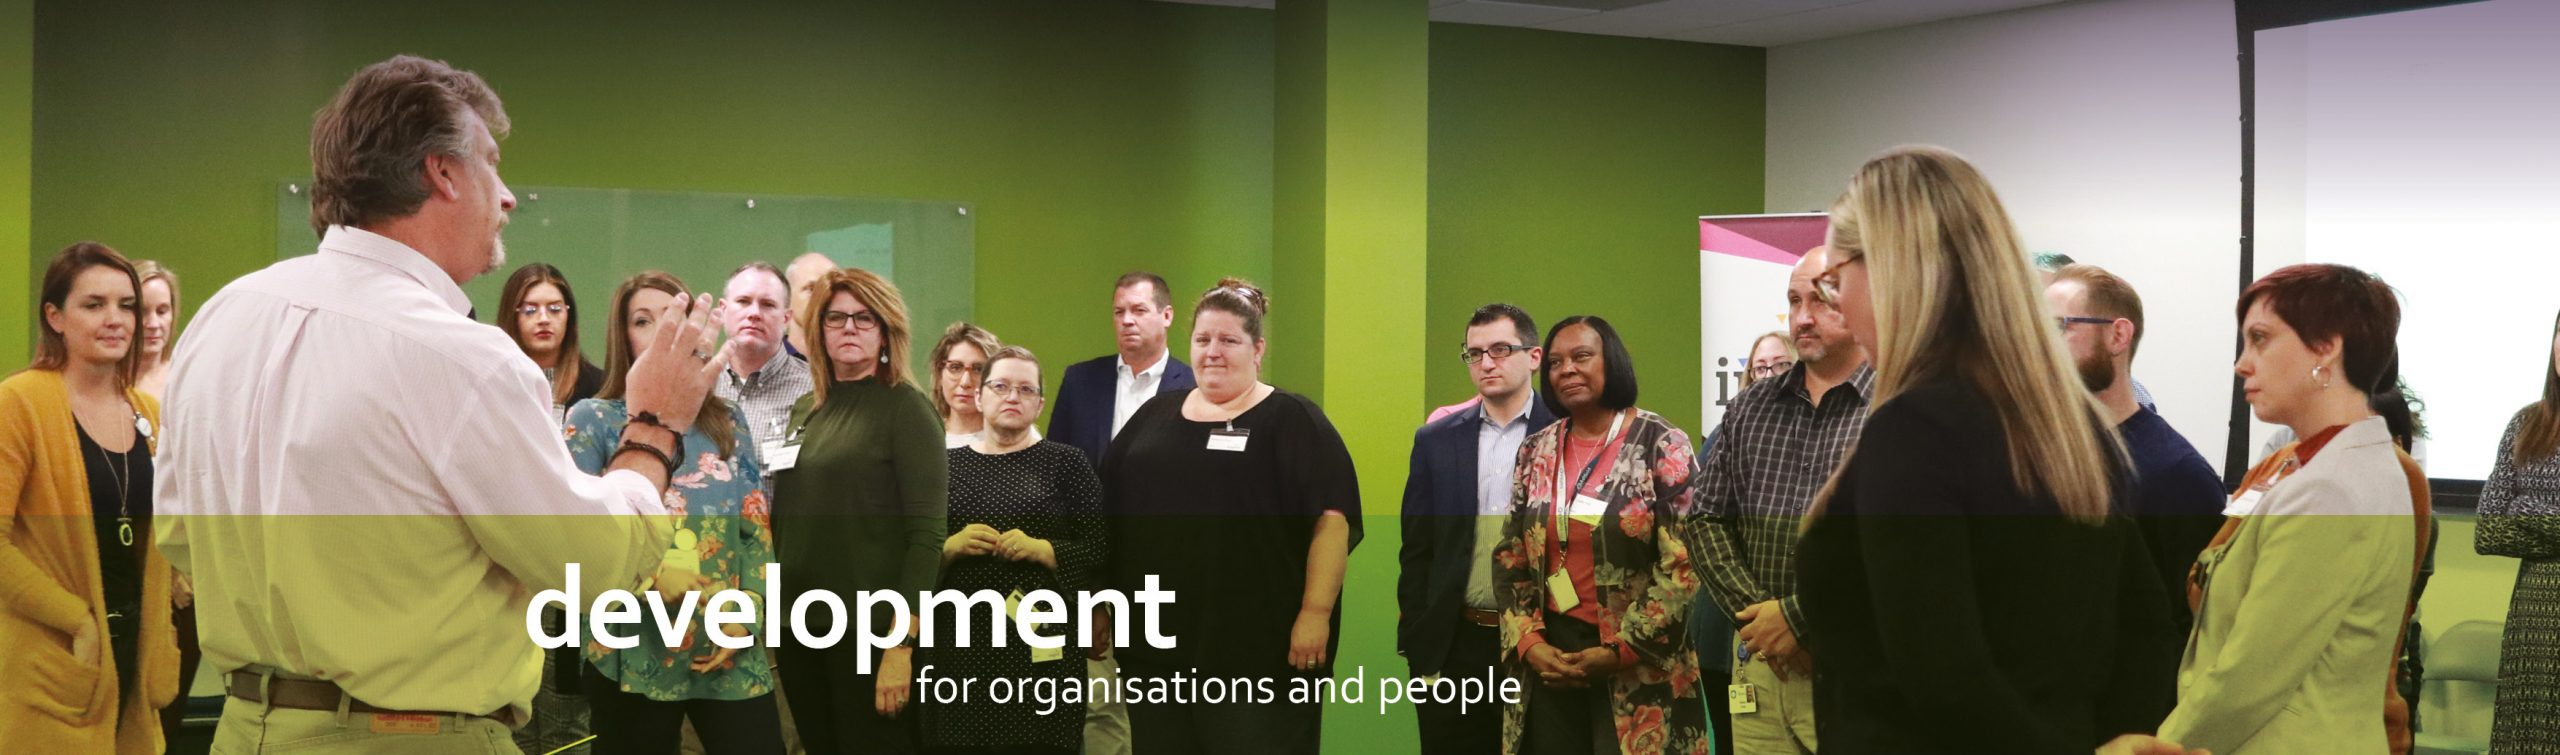 dolphinblue - leadership development for organisations and people